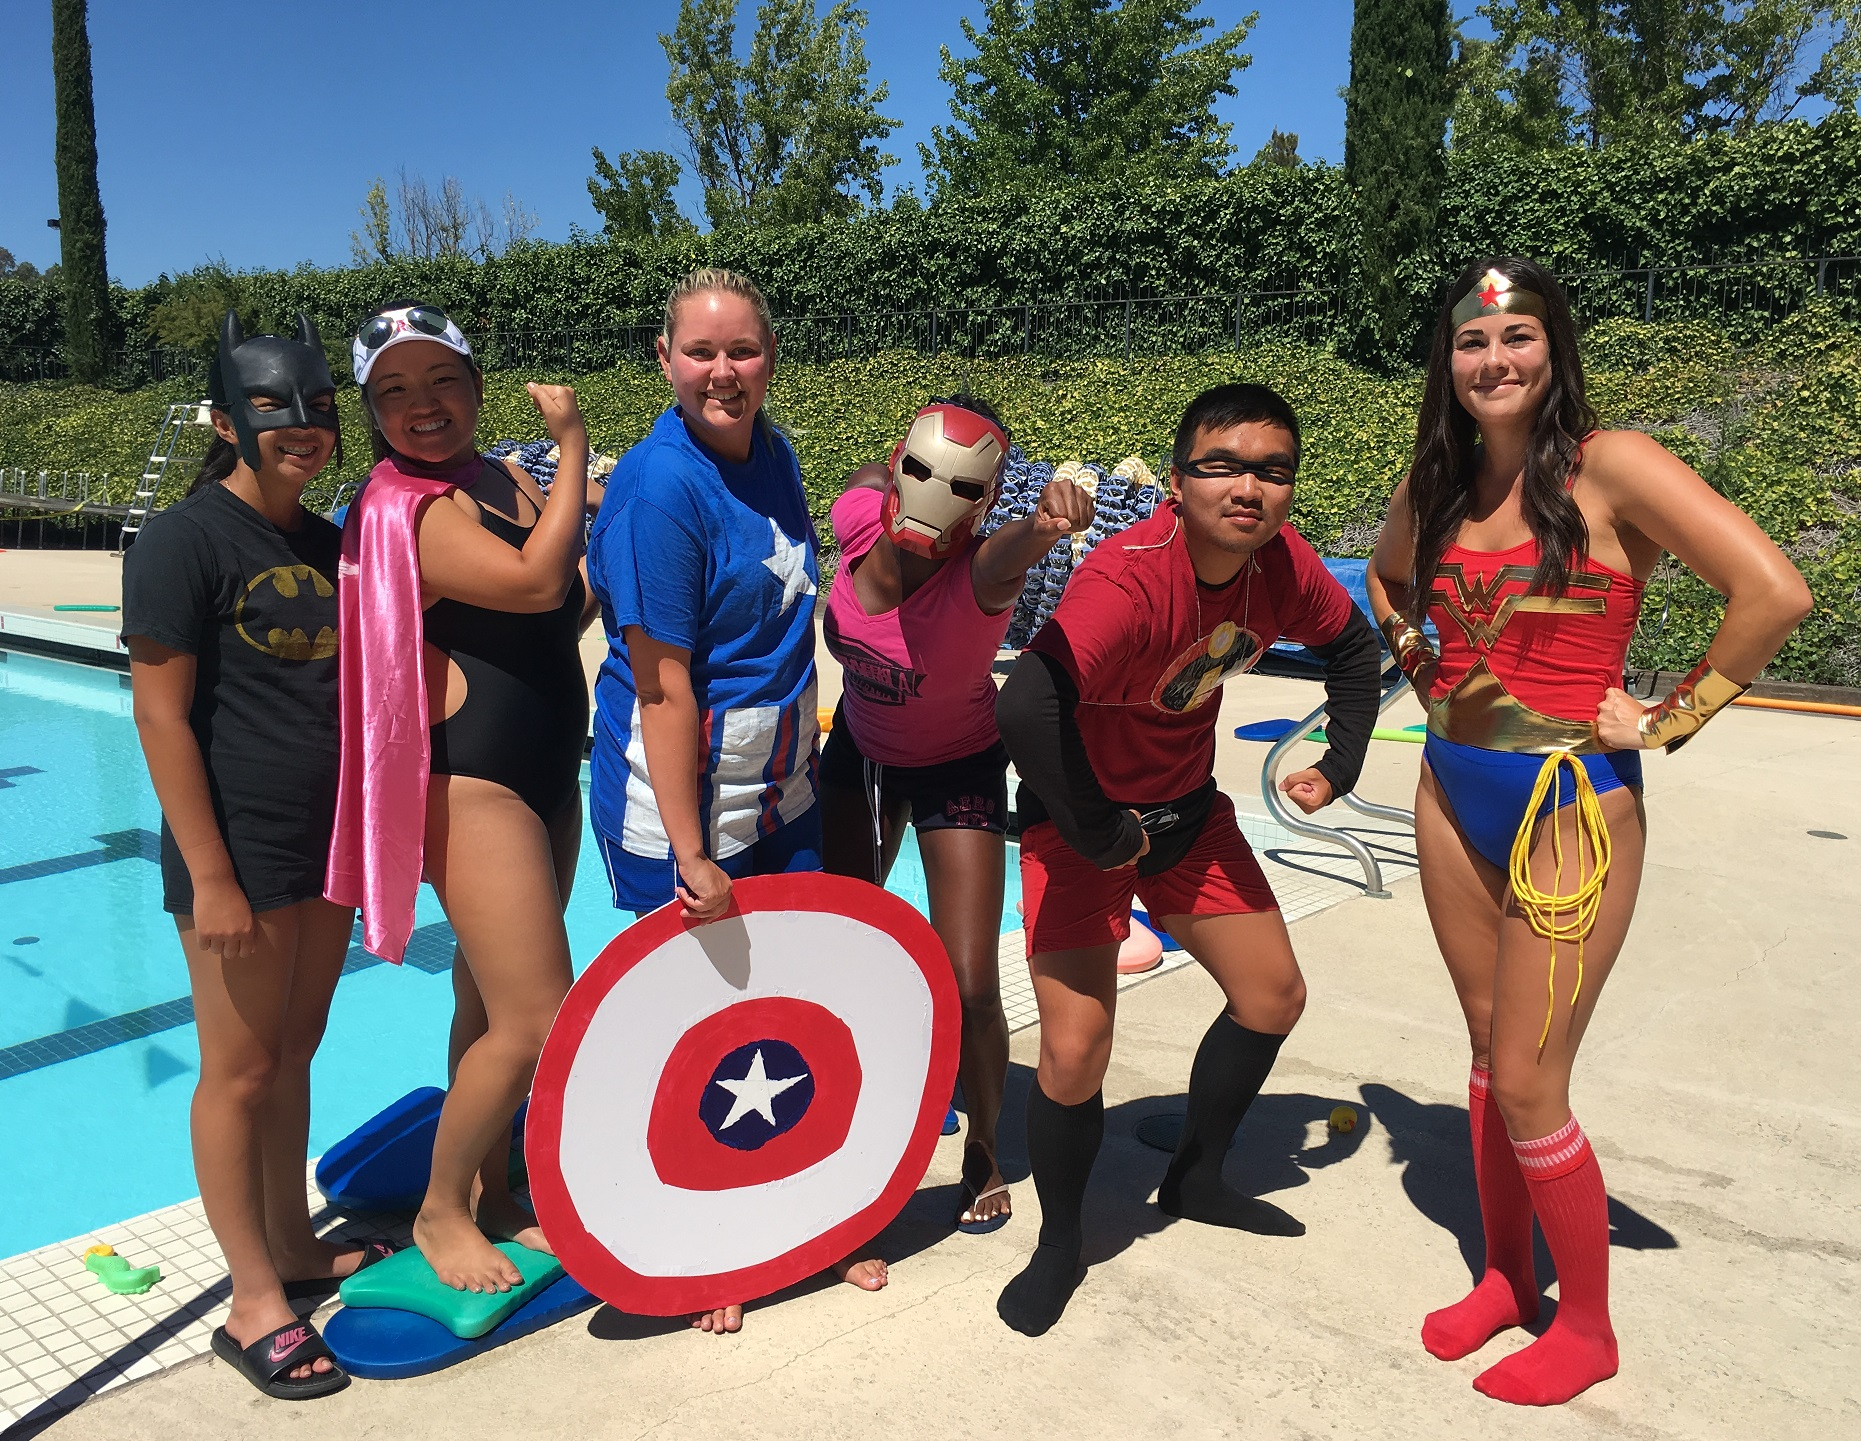 Superheroes at the Pool